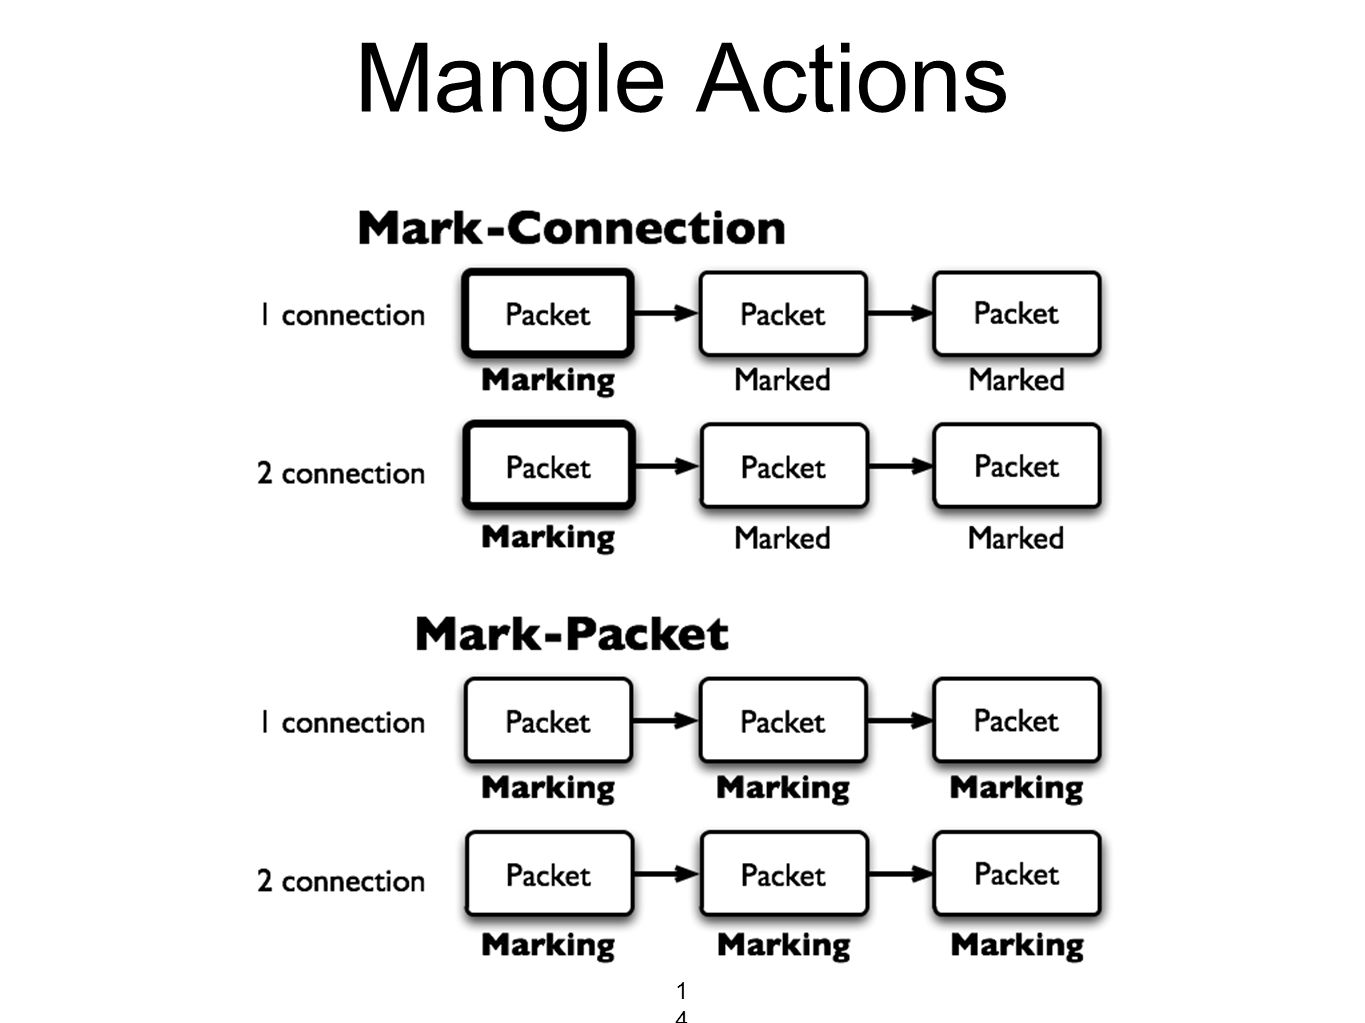 Mangle Actions 146146146